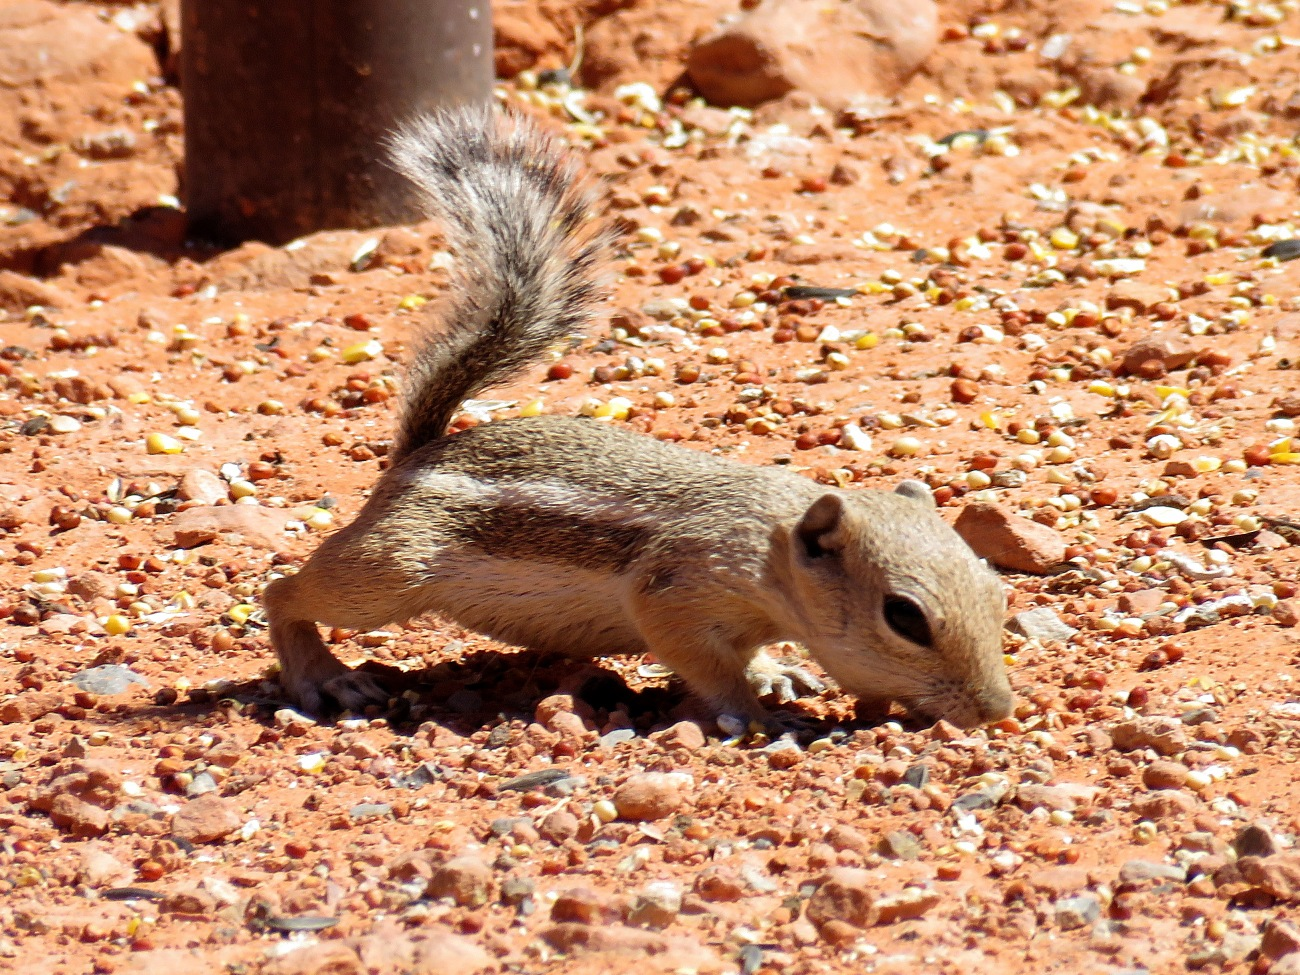 20170615_131214_Golden Rock Squirrel